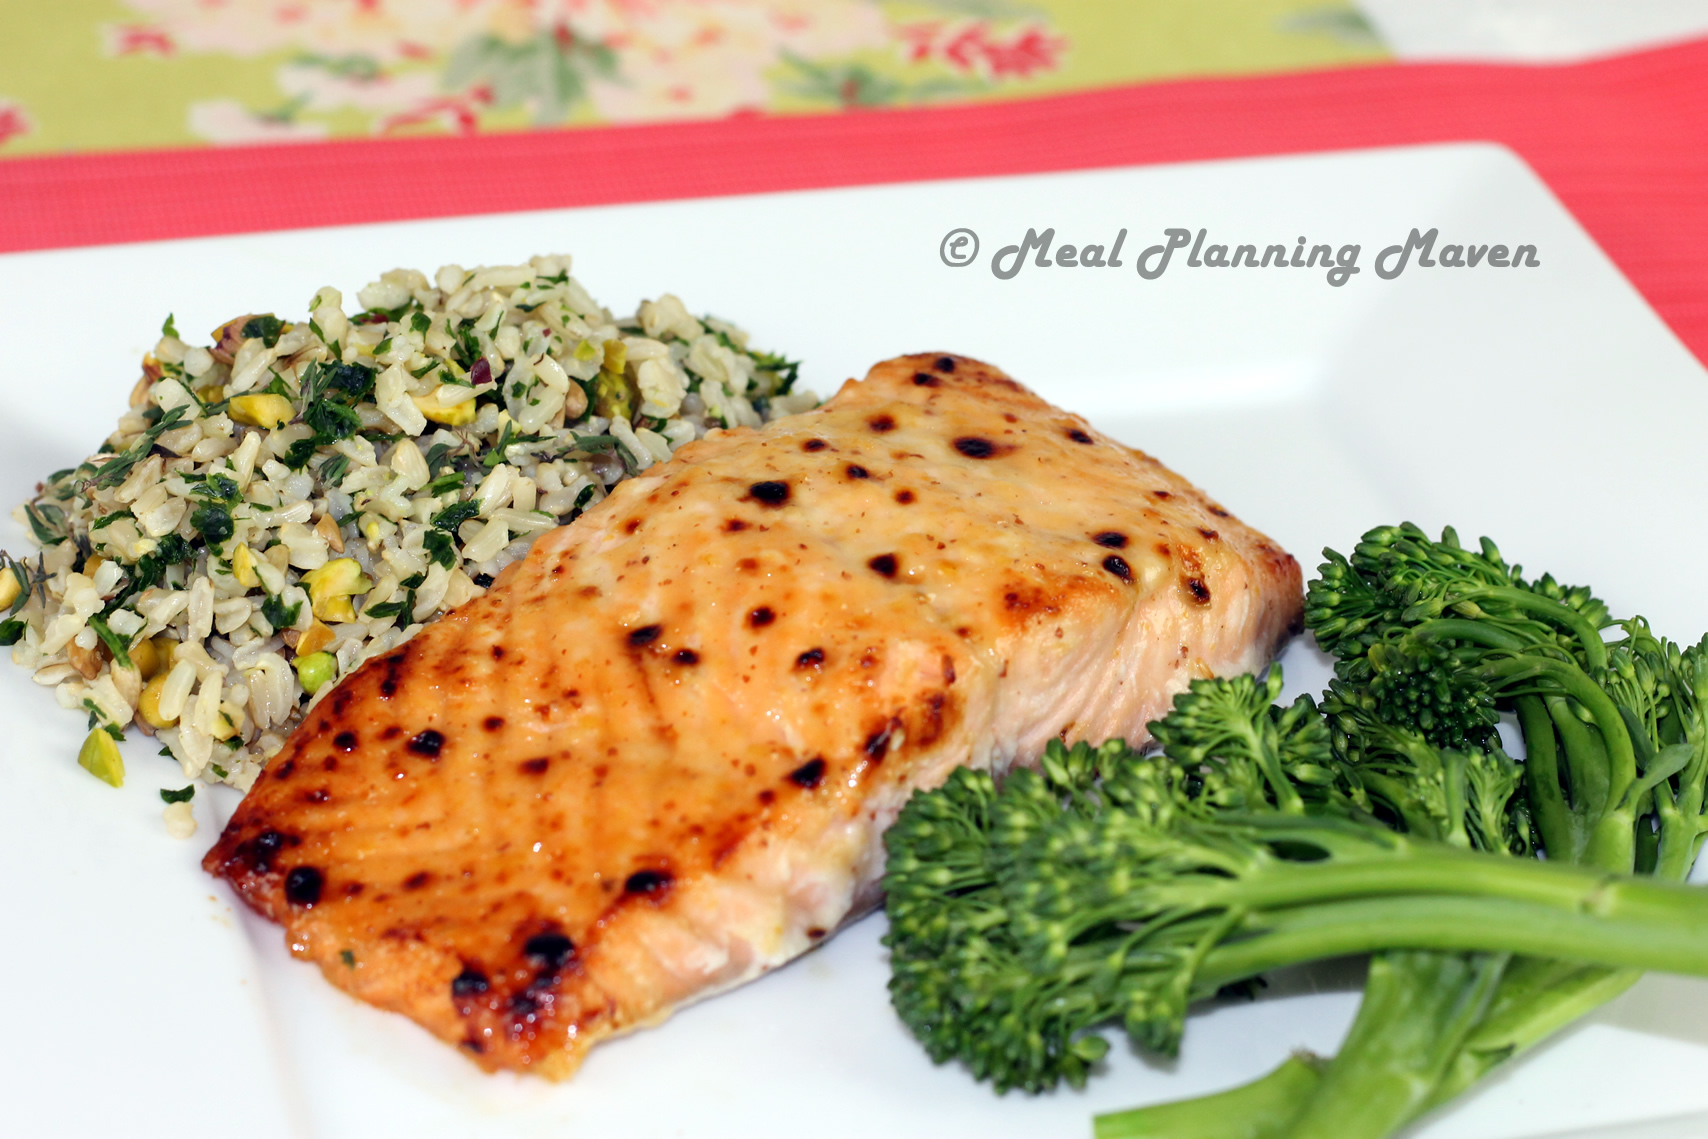 Apricot 'n Lemon Glazed Salmon